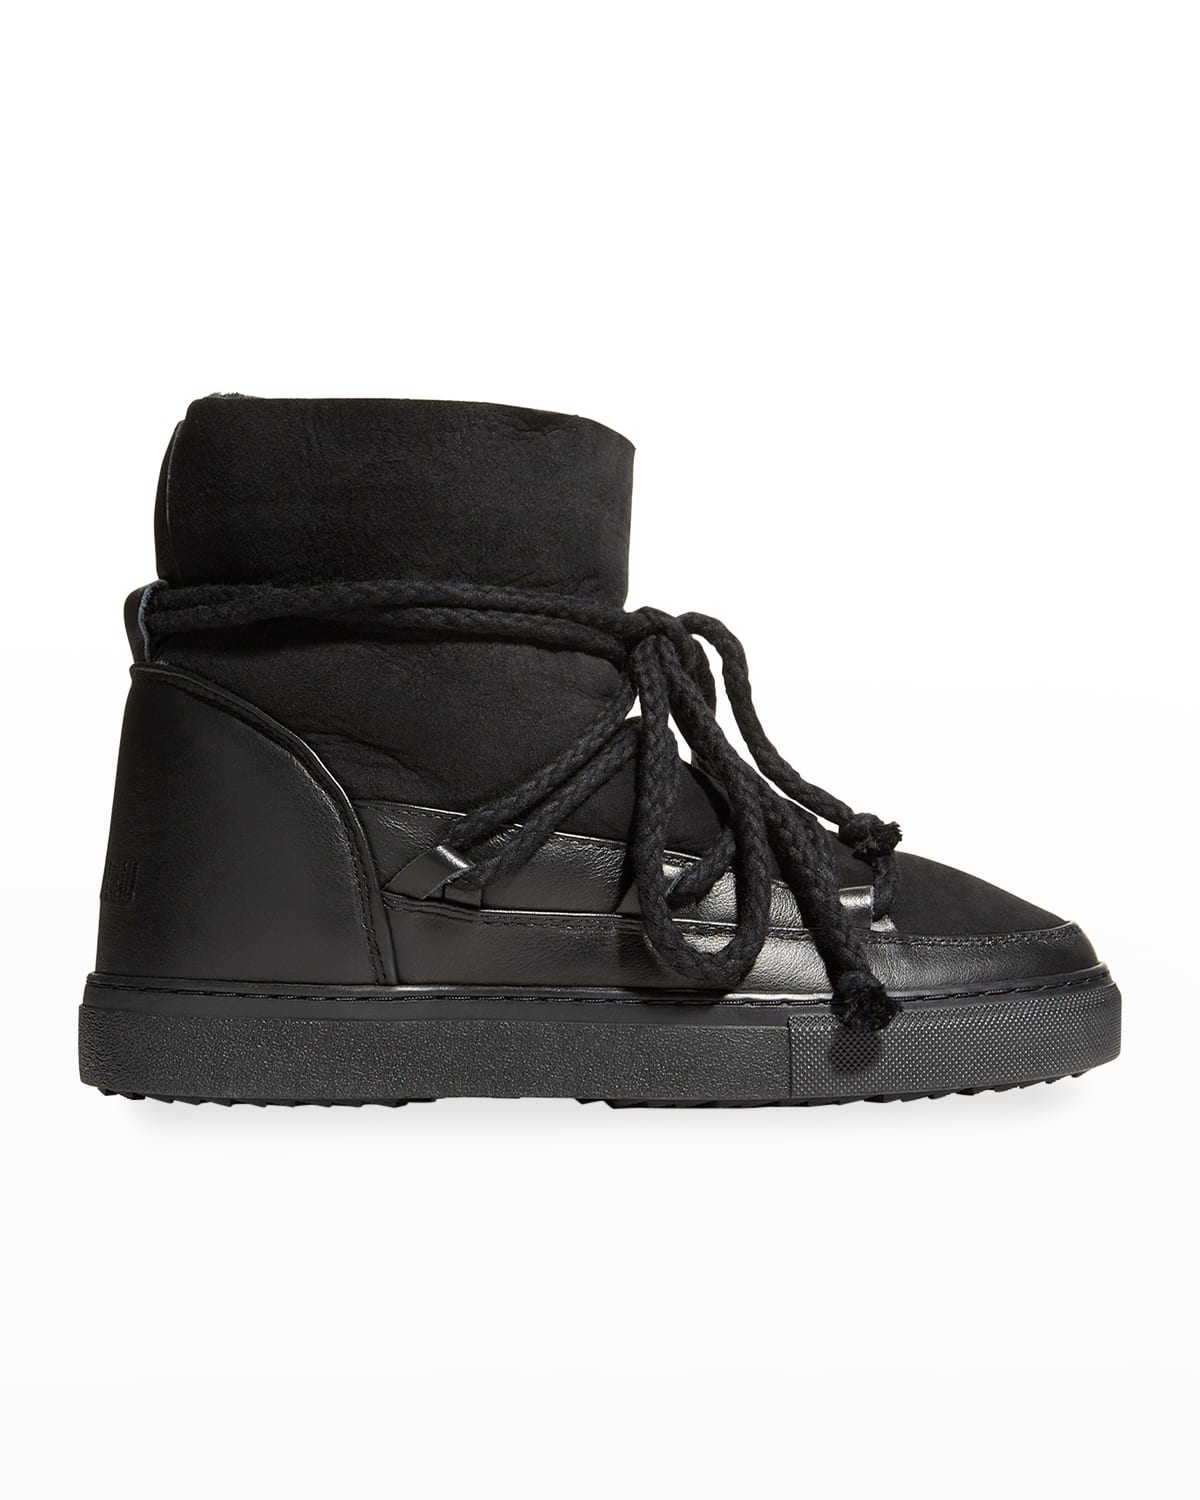 Classic Mixed Leather Shearling Snow Booties